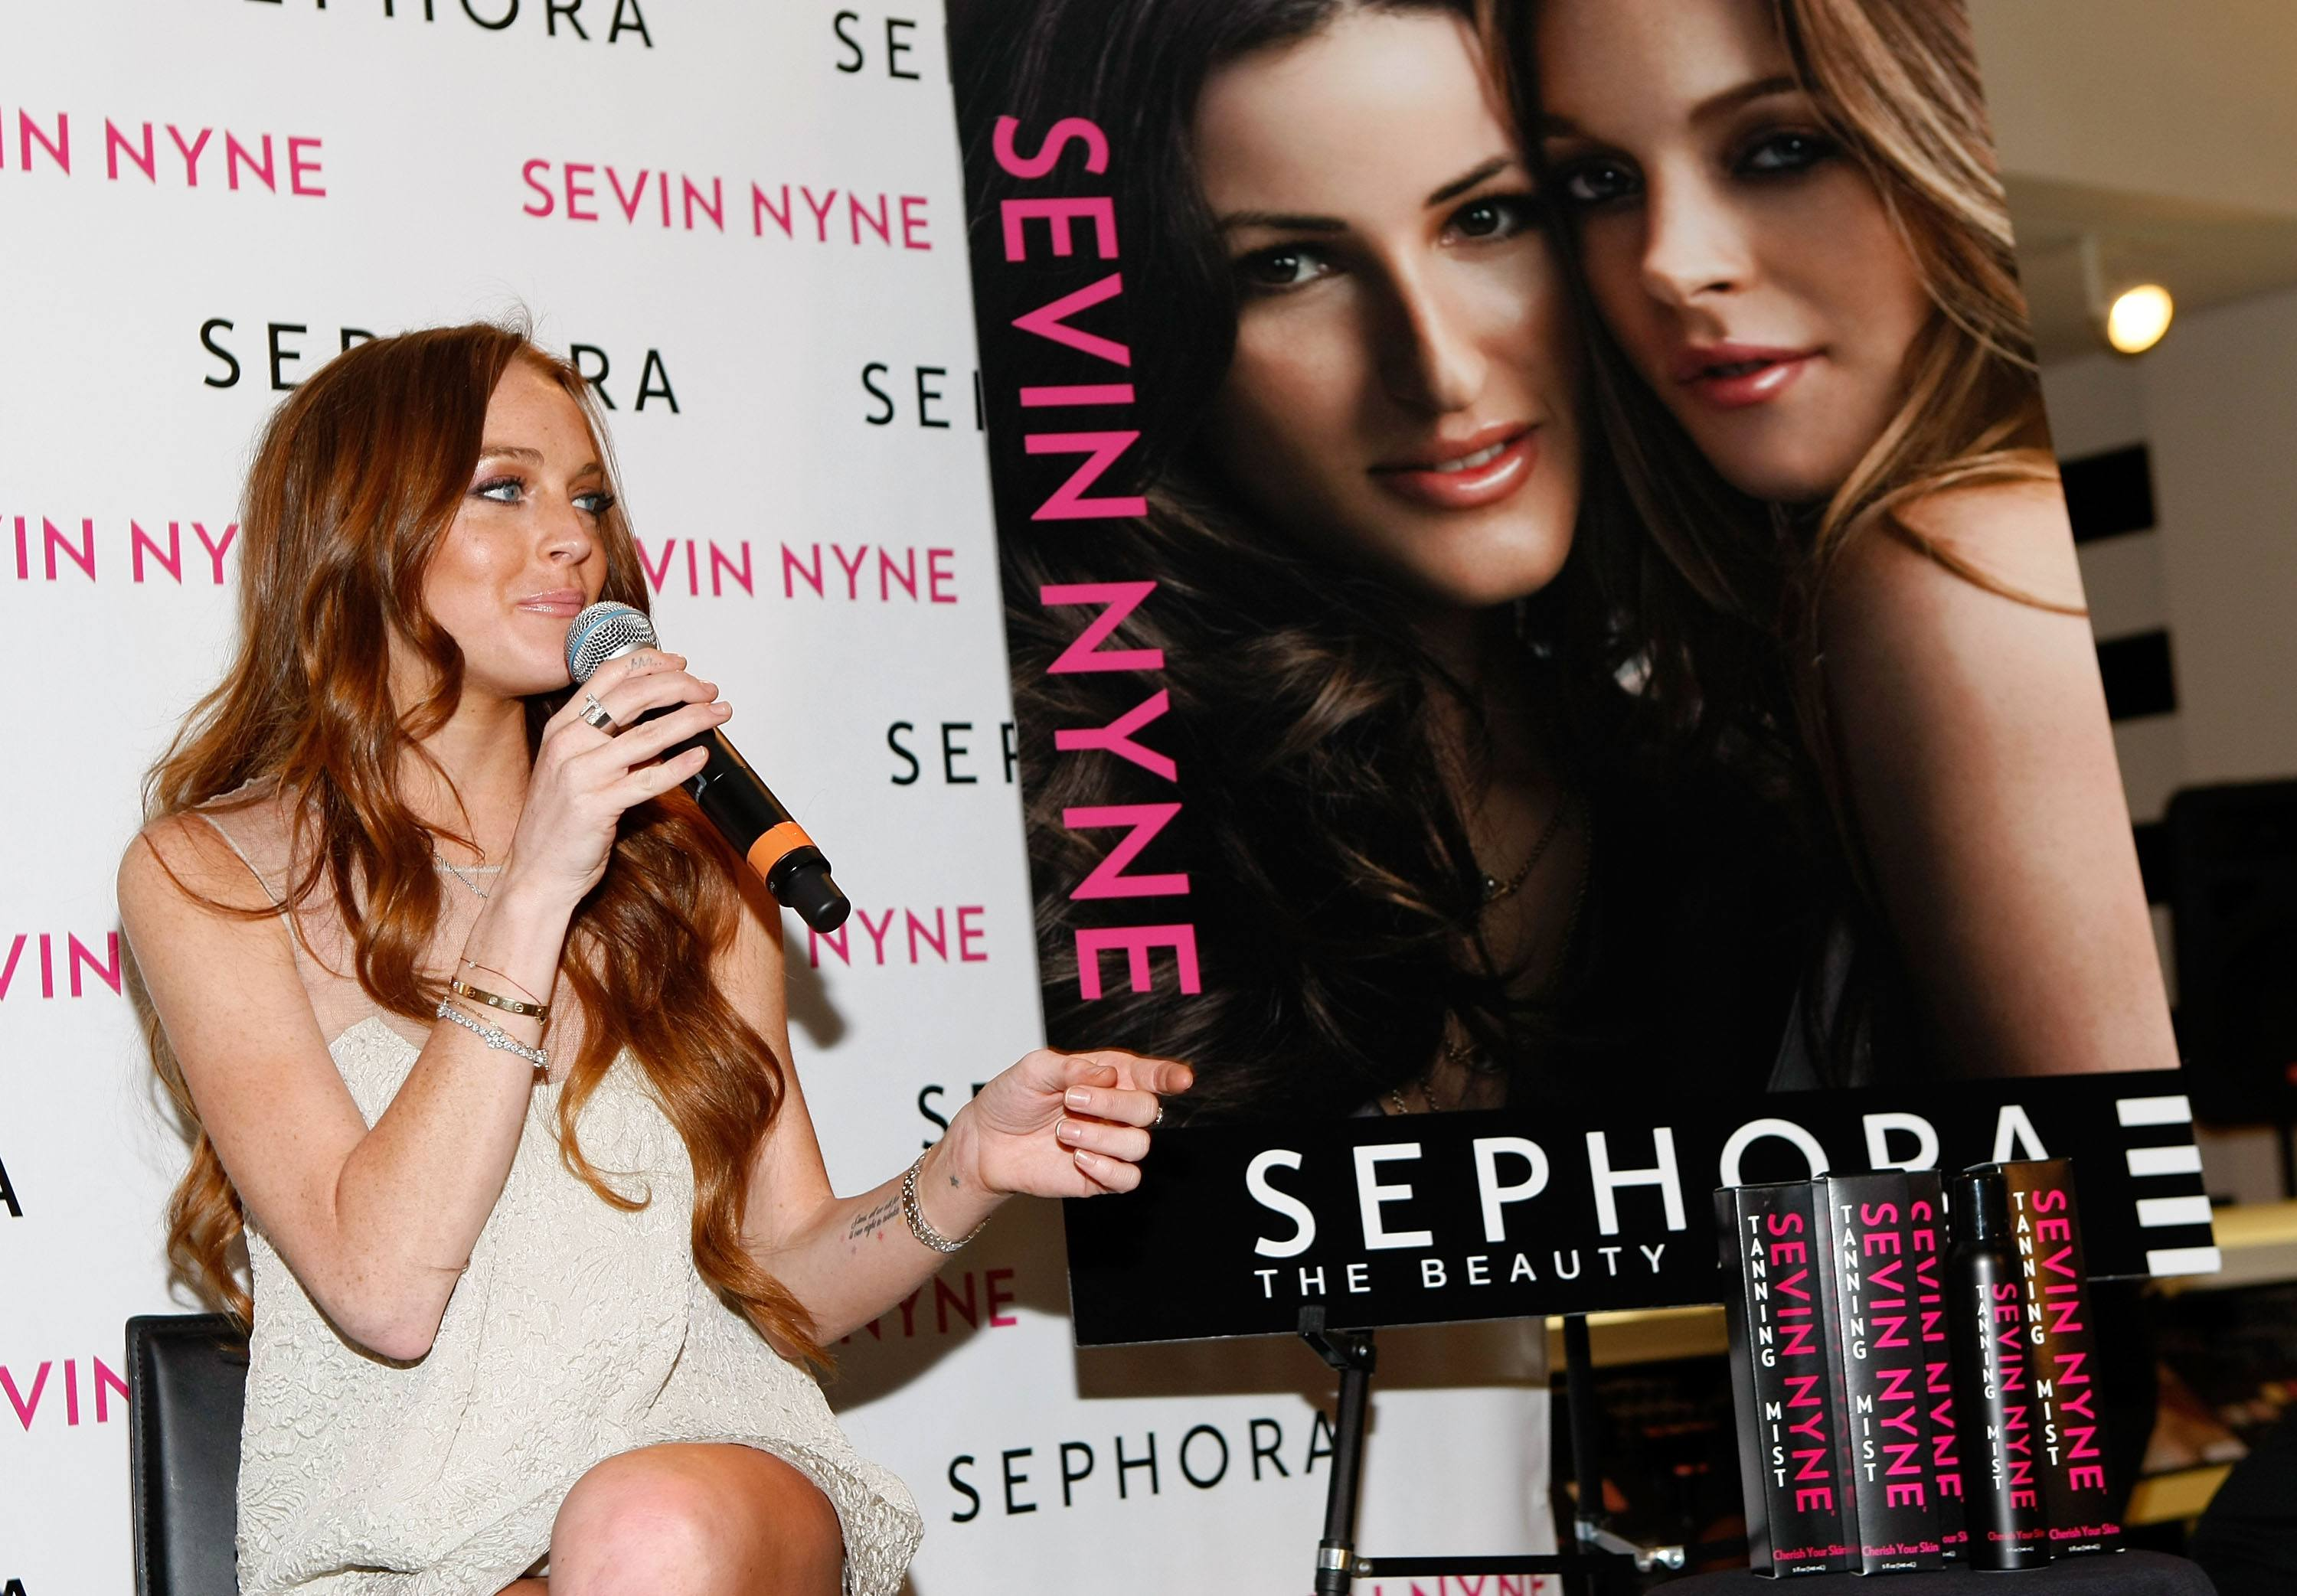 Lindsay Lohan Spray Tan Launch Party